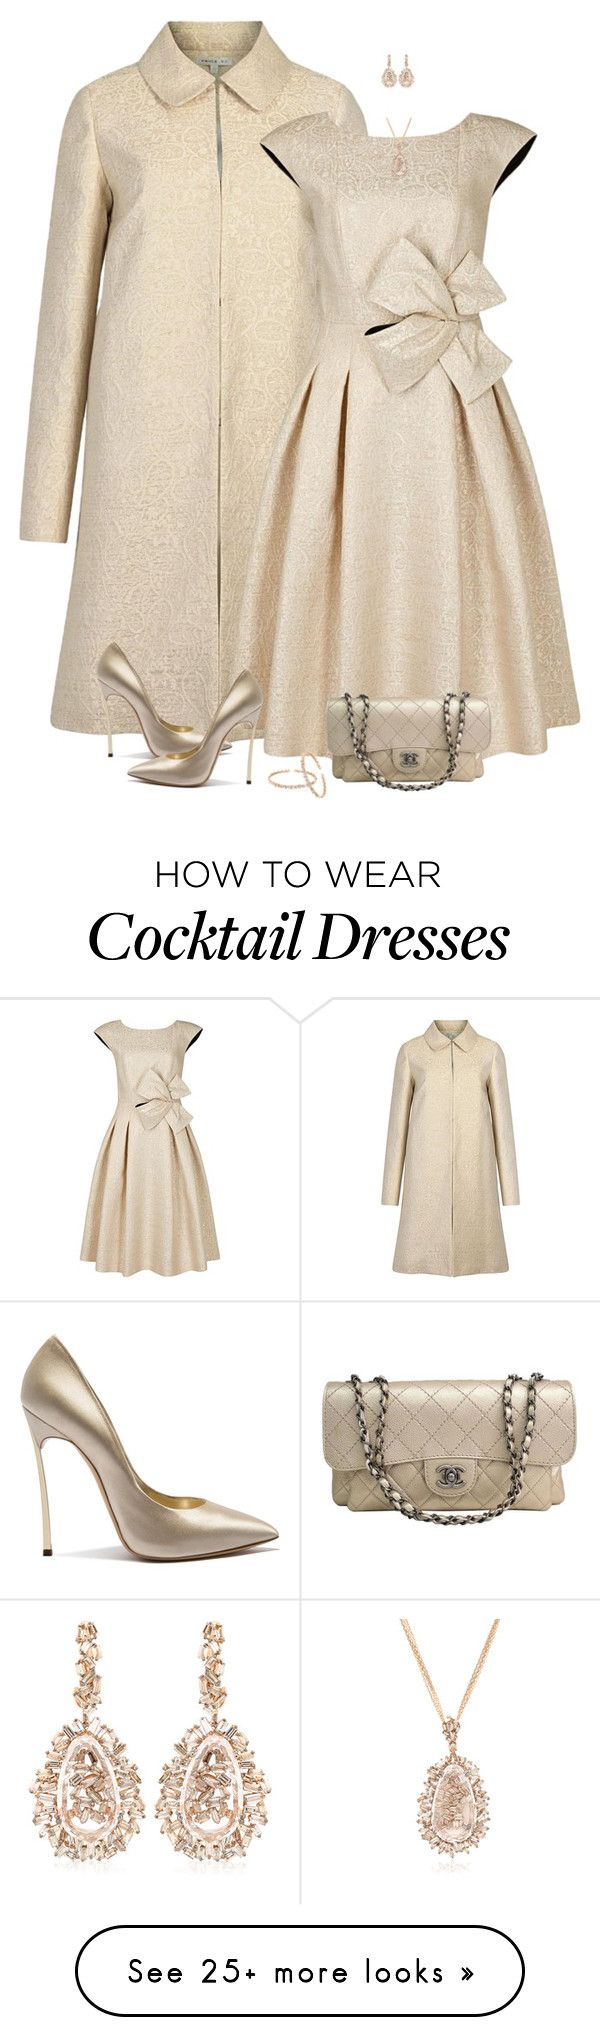 """""""set"""" by vesper1977 on Polyvore featuring Paule Ka, Casadei, Chanel and Suzanne Kalan"""